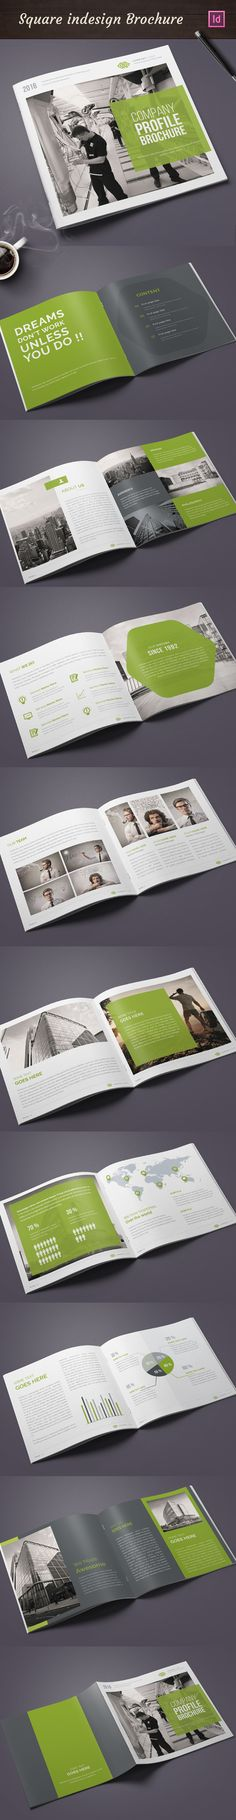 "Check out this @Behance project: ""Square Business Brochure"" https://www.behance.net/gallery/35255707/Square-Business-Brochure"